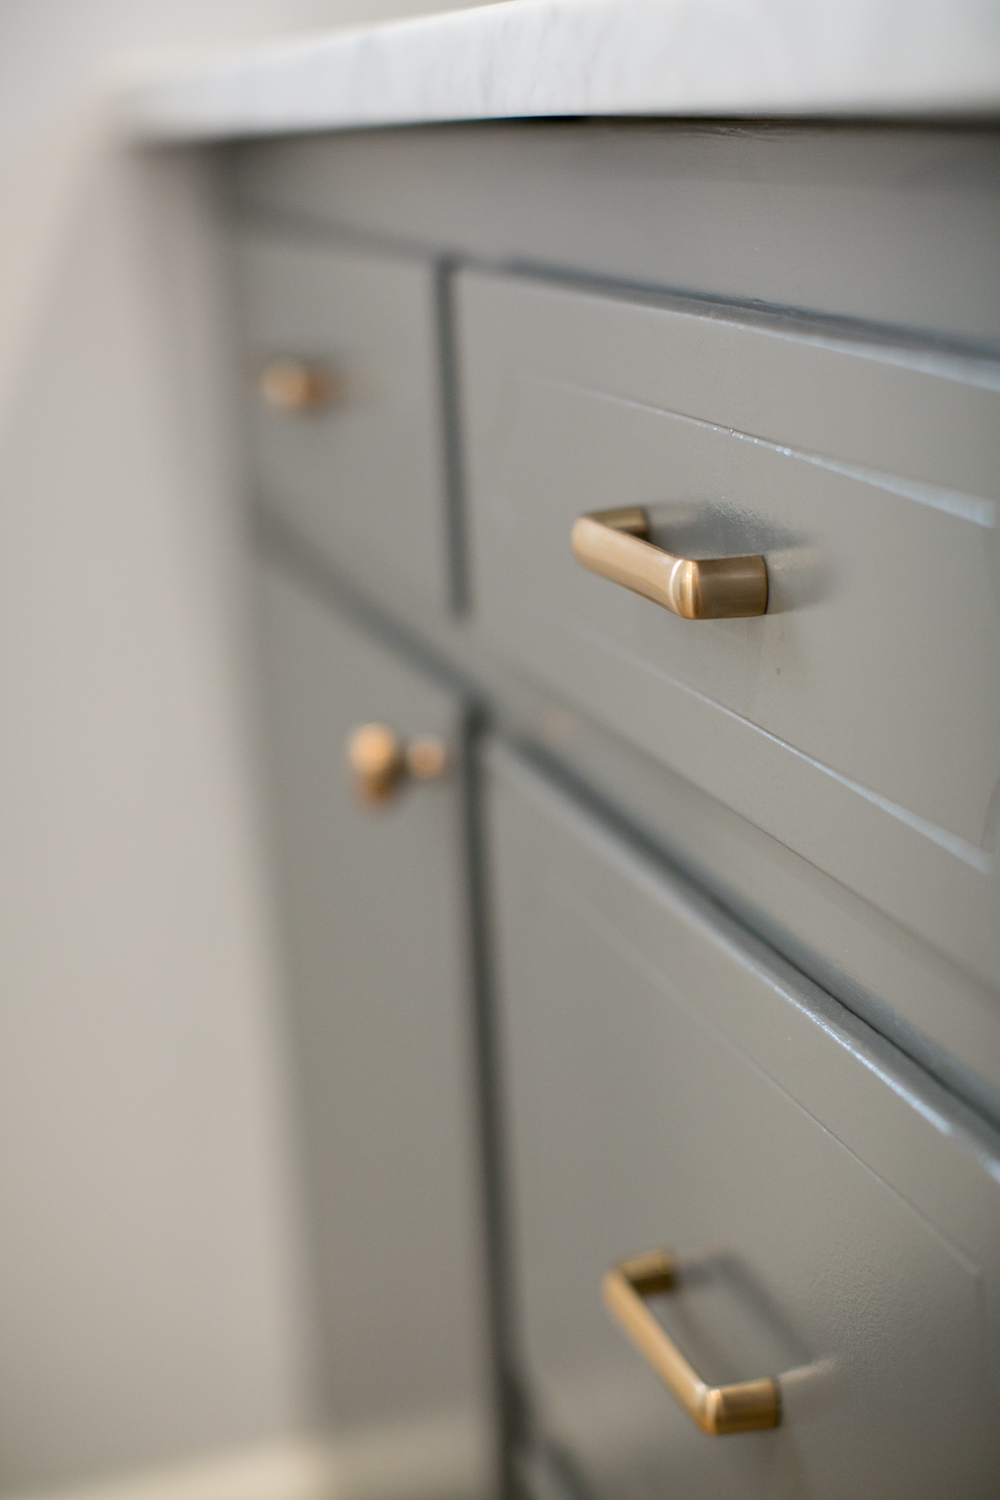 ... Switch From Chrome To Satin Rose Gold Knobs + Pulls In My Kitchen And I  Absolutely Love The Warmth It Adds Against My Gray + White Two Toned  Cabinets